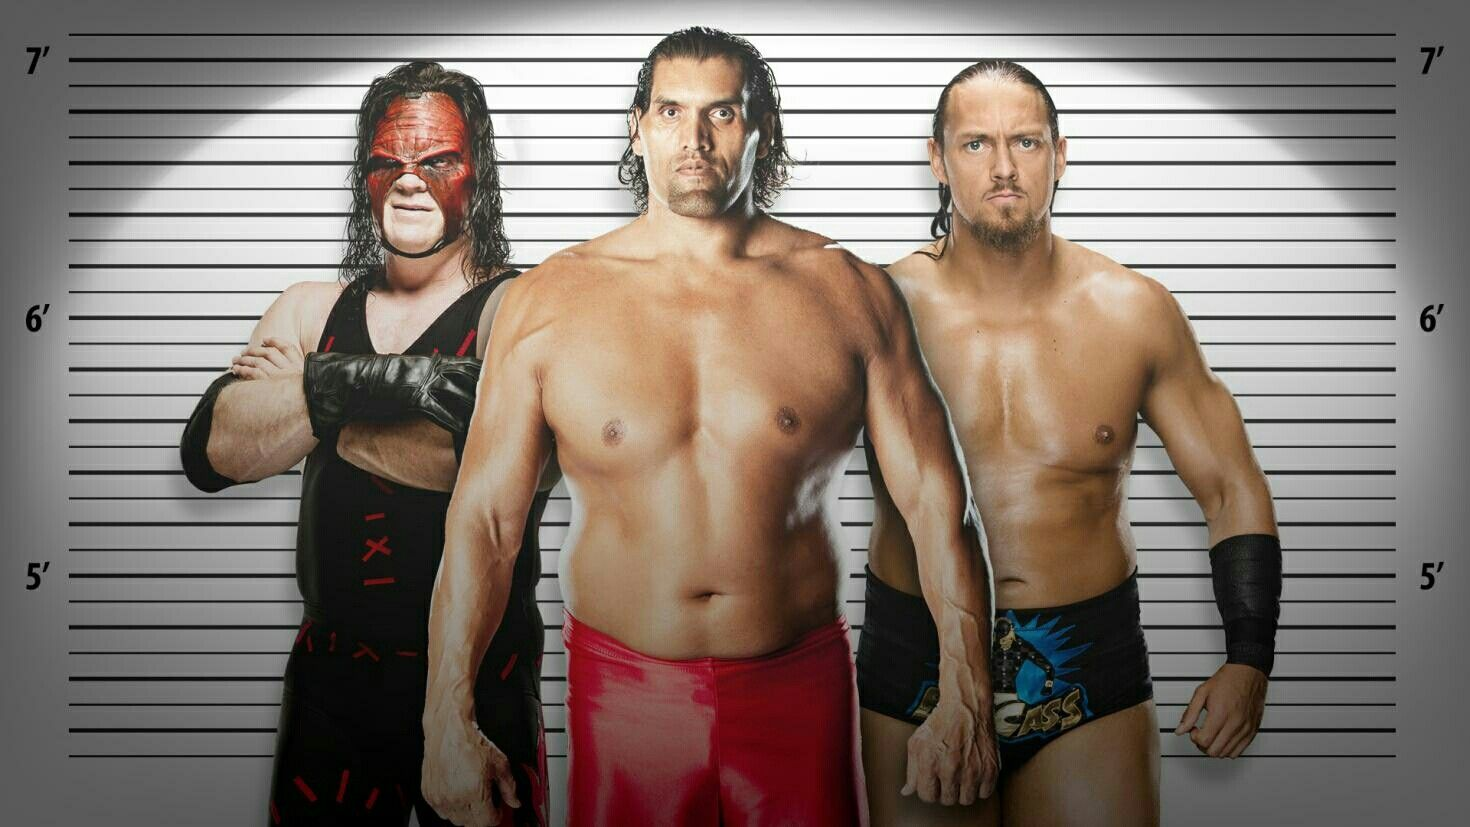 Andre The Giant And The Big Show And Big Cass And Kane And The